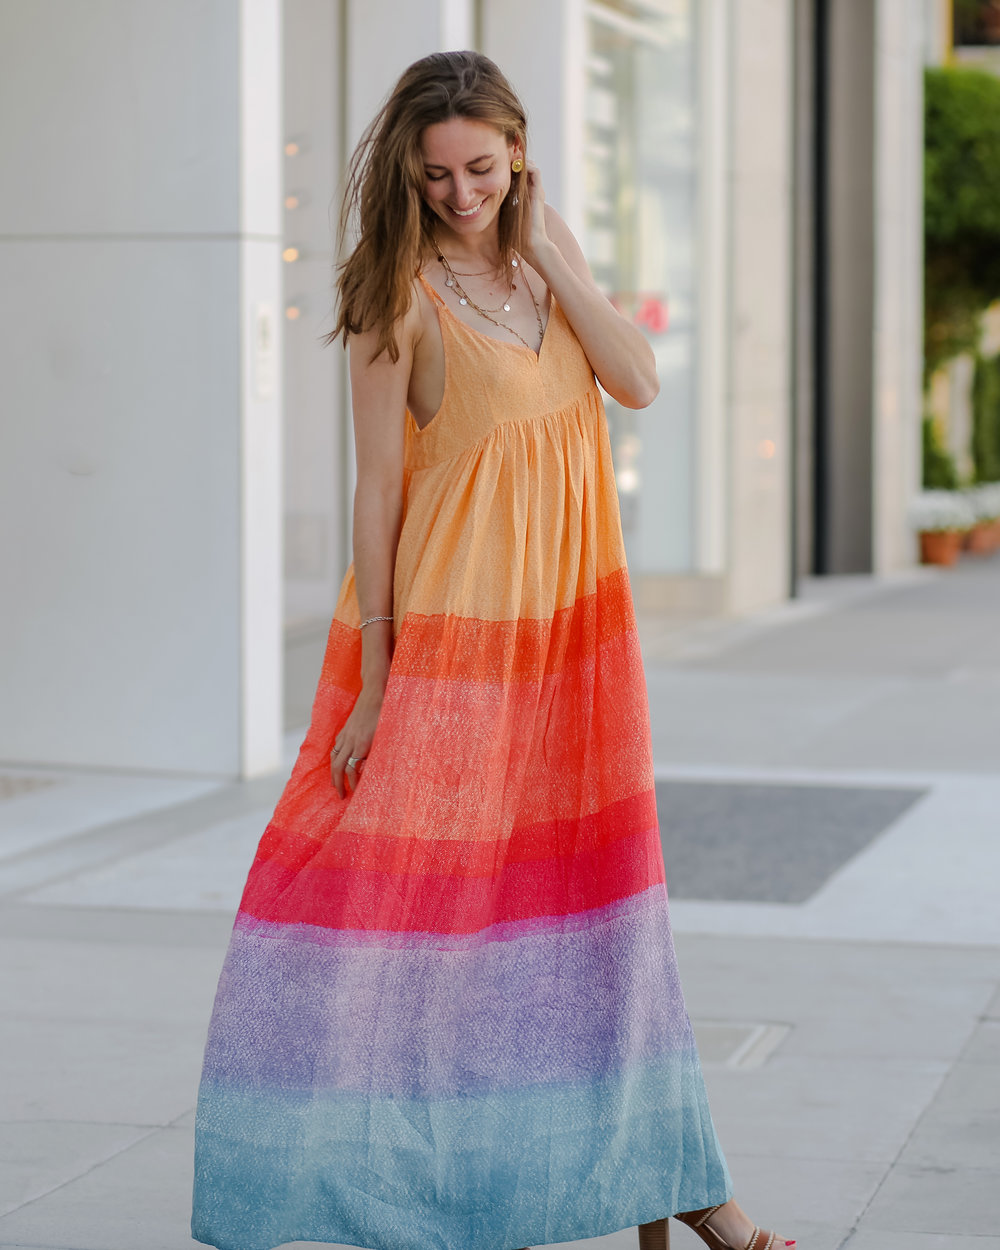 5f9fe5c2e92 I love this rainbow splashed maxi dress from Anthropologie because it  reminds me of my carefree days on the island. From snow cones to the state  license ...